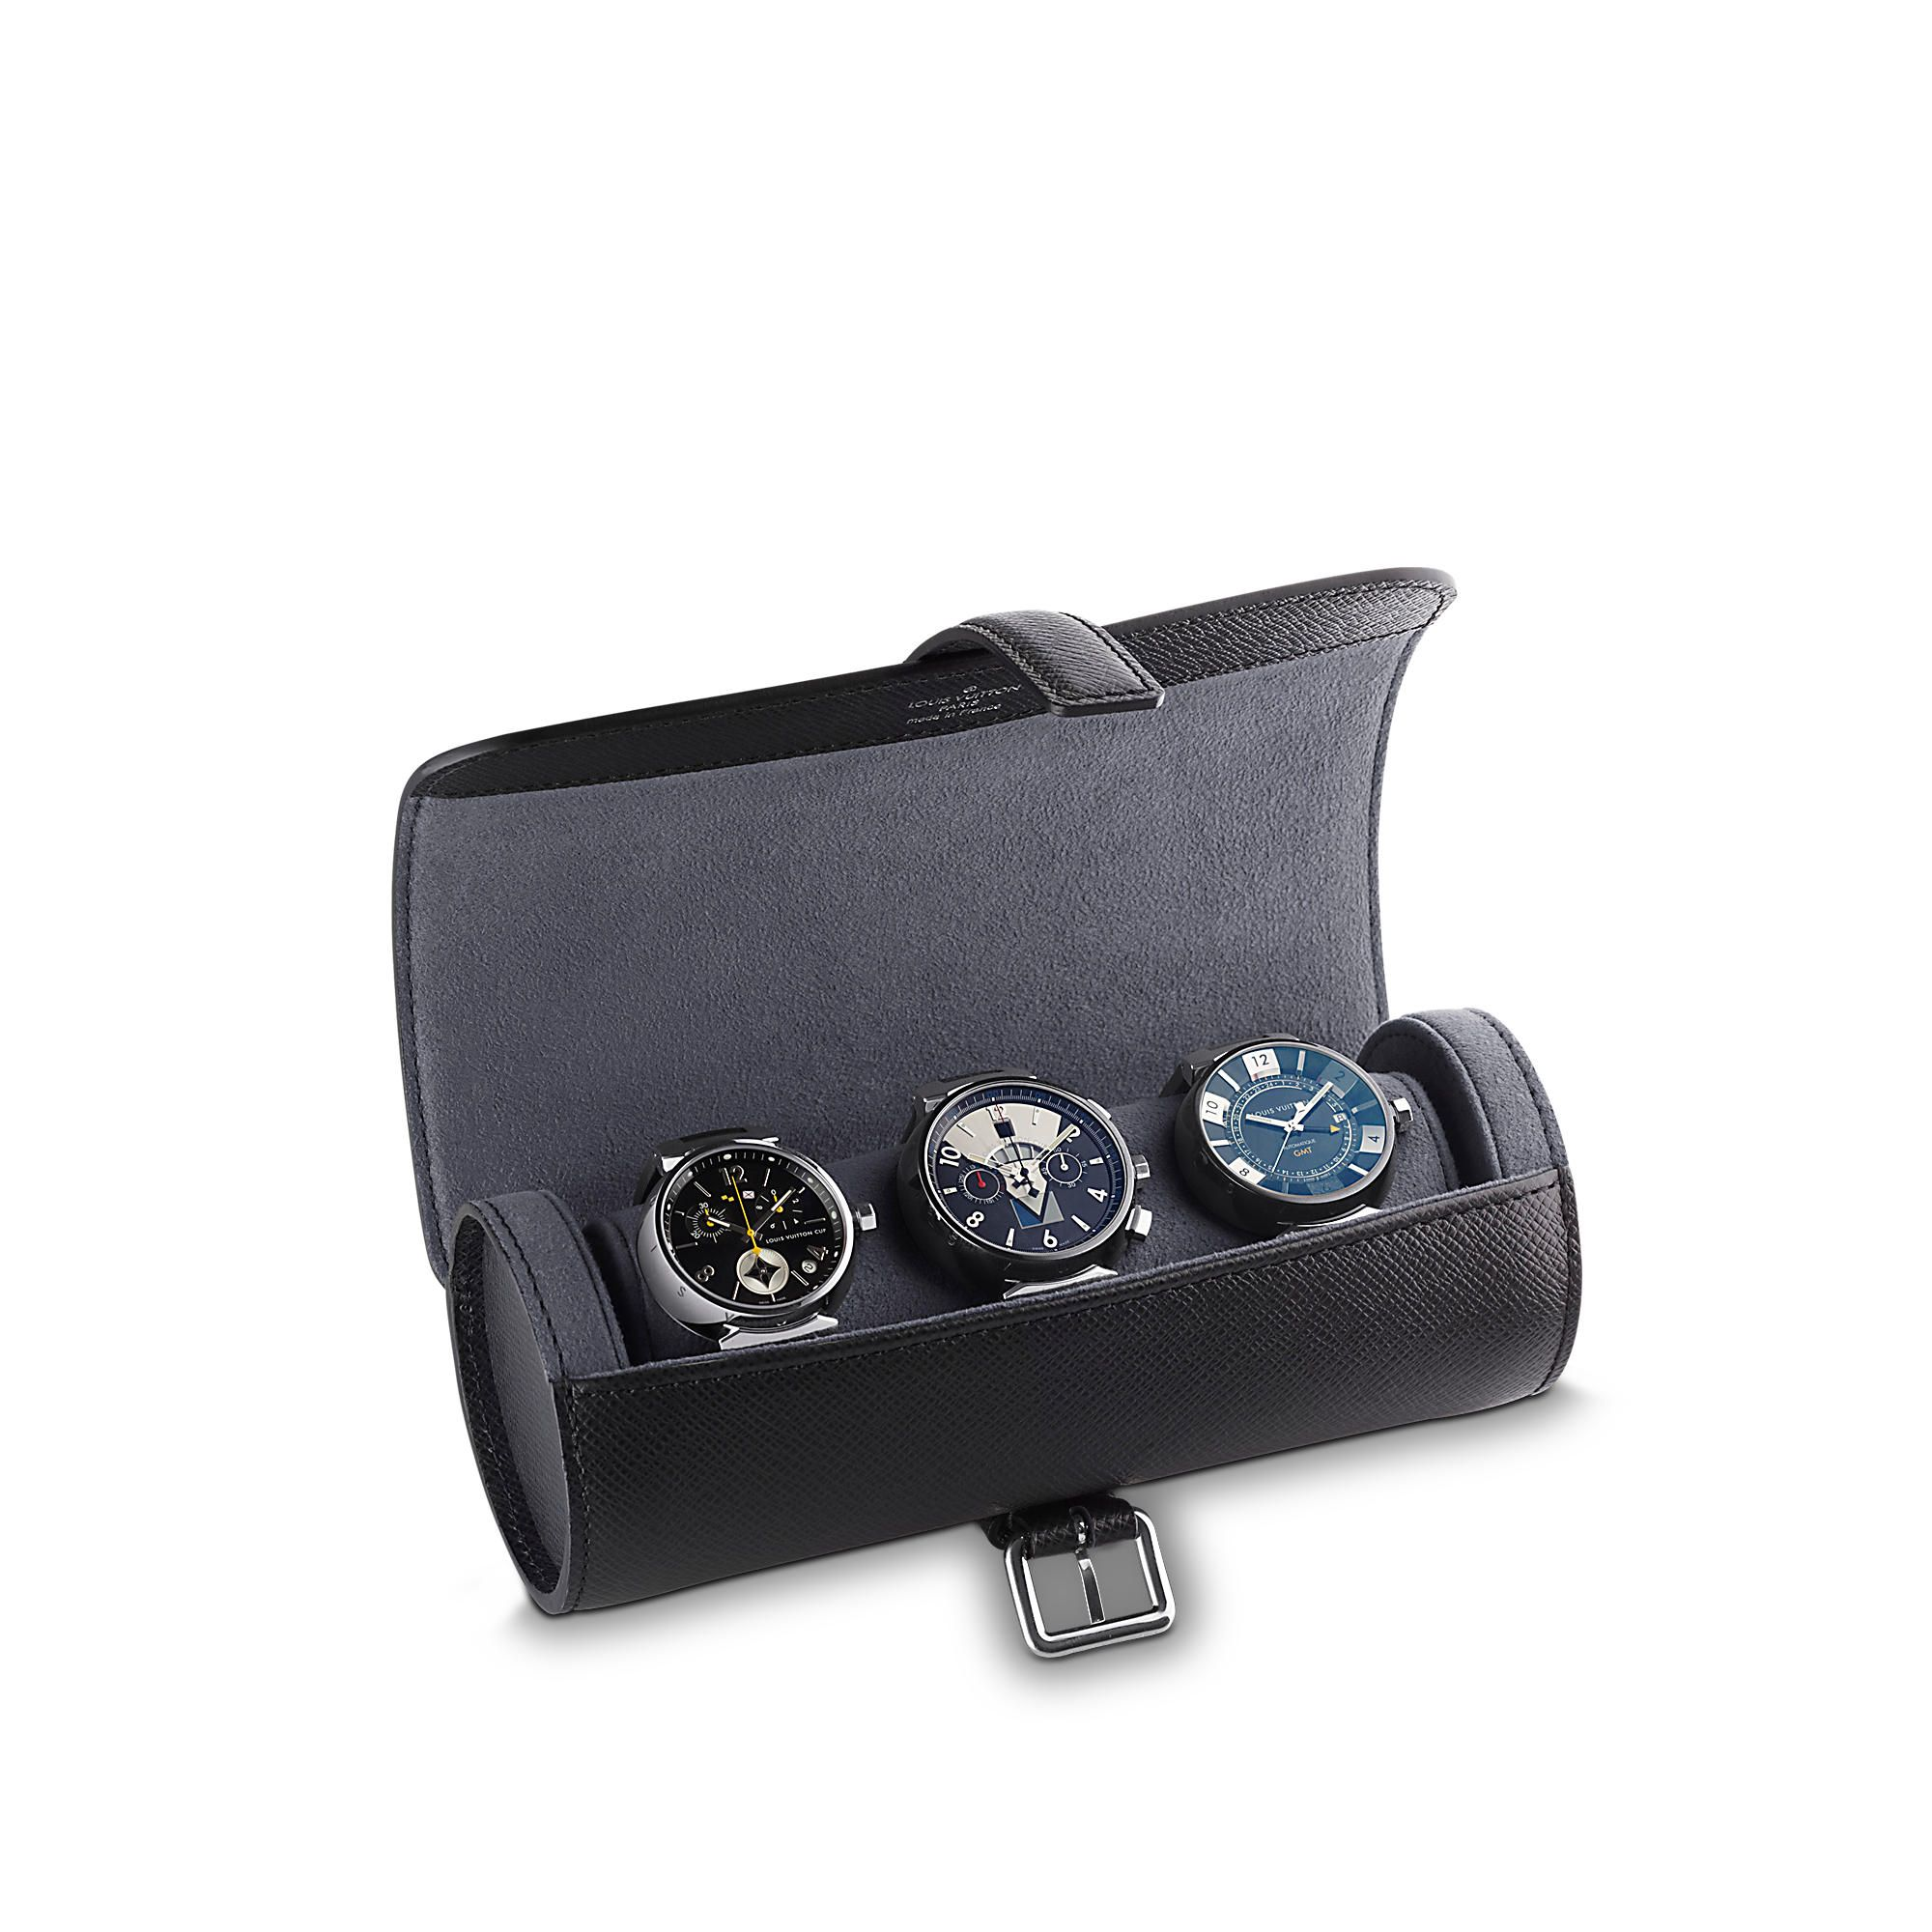 Louis Vuitton Etui 3 Montres Taiga To Travel In Style With Your